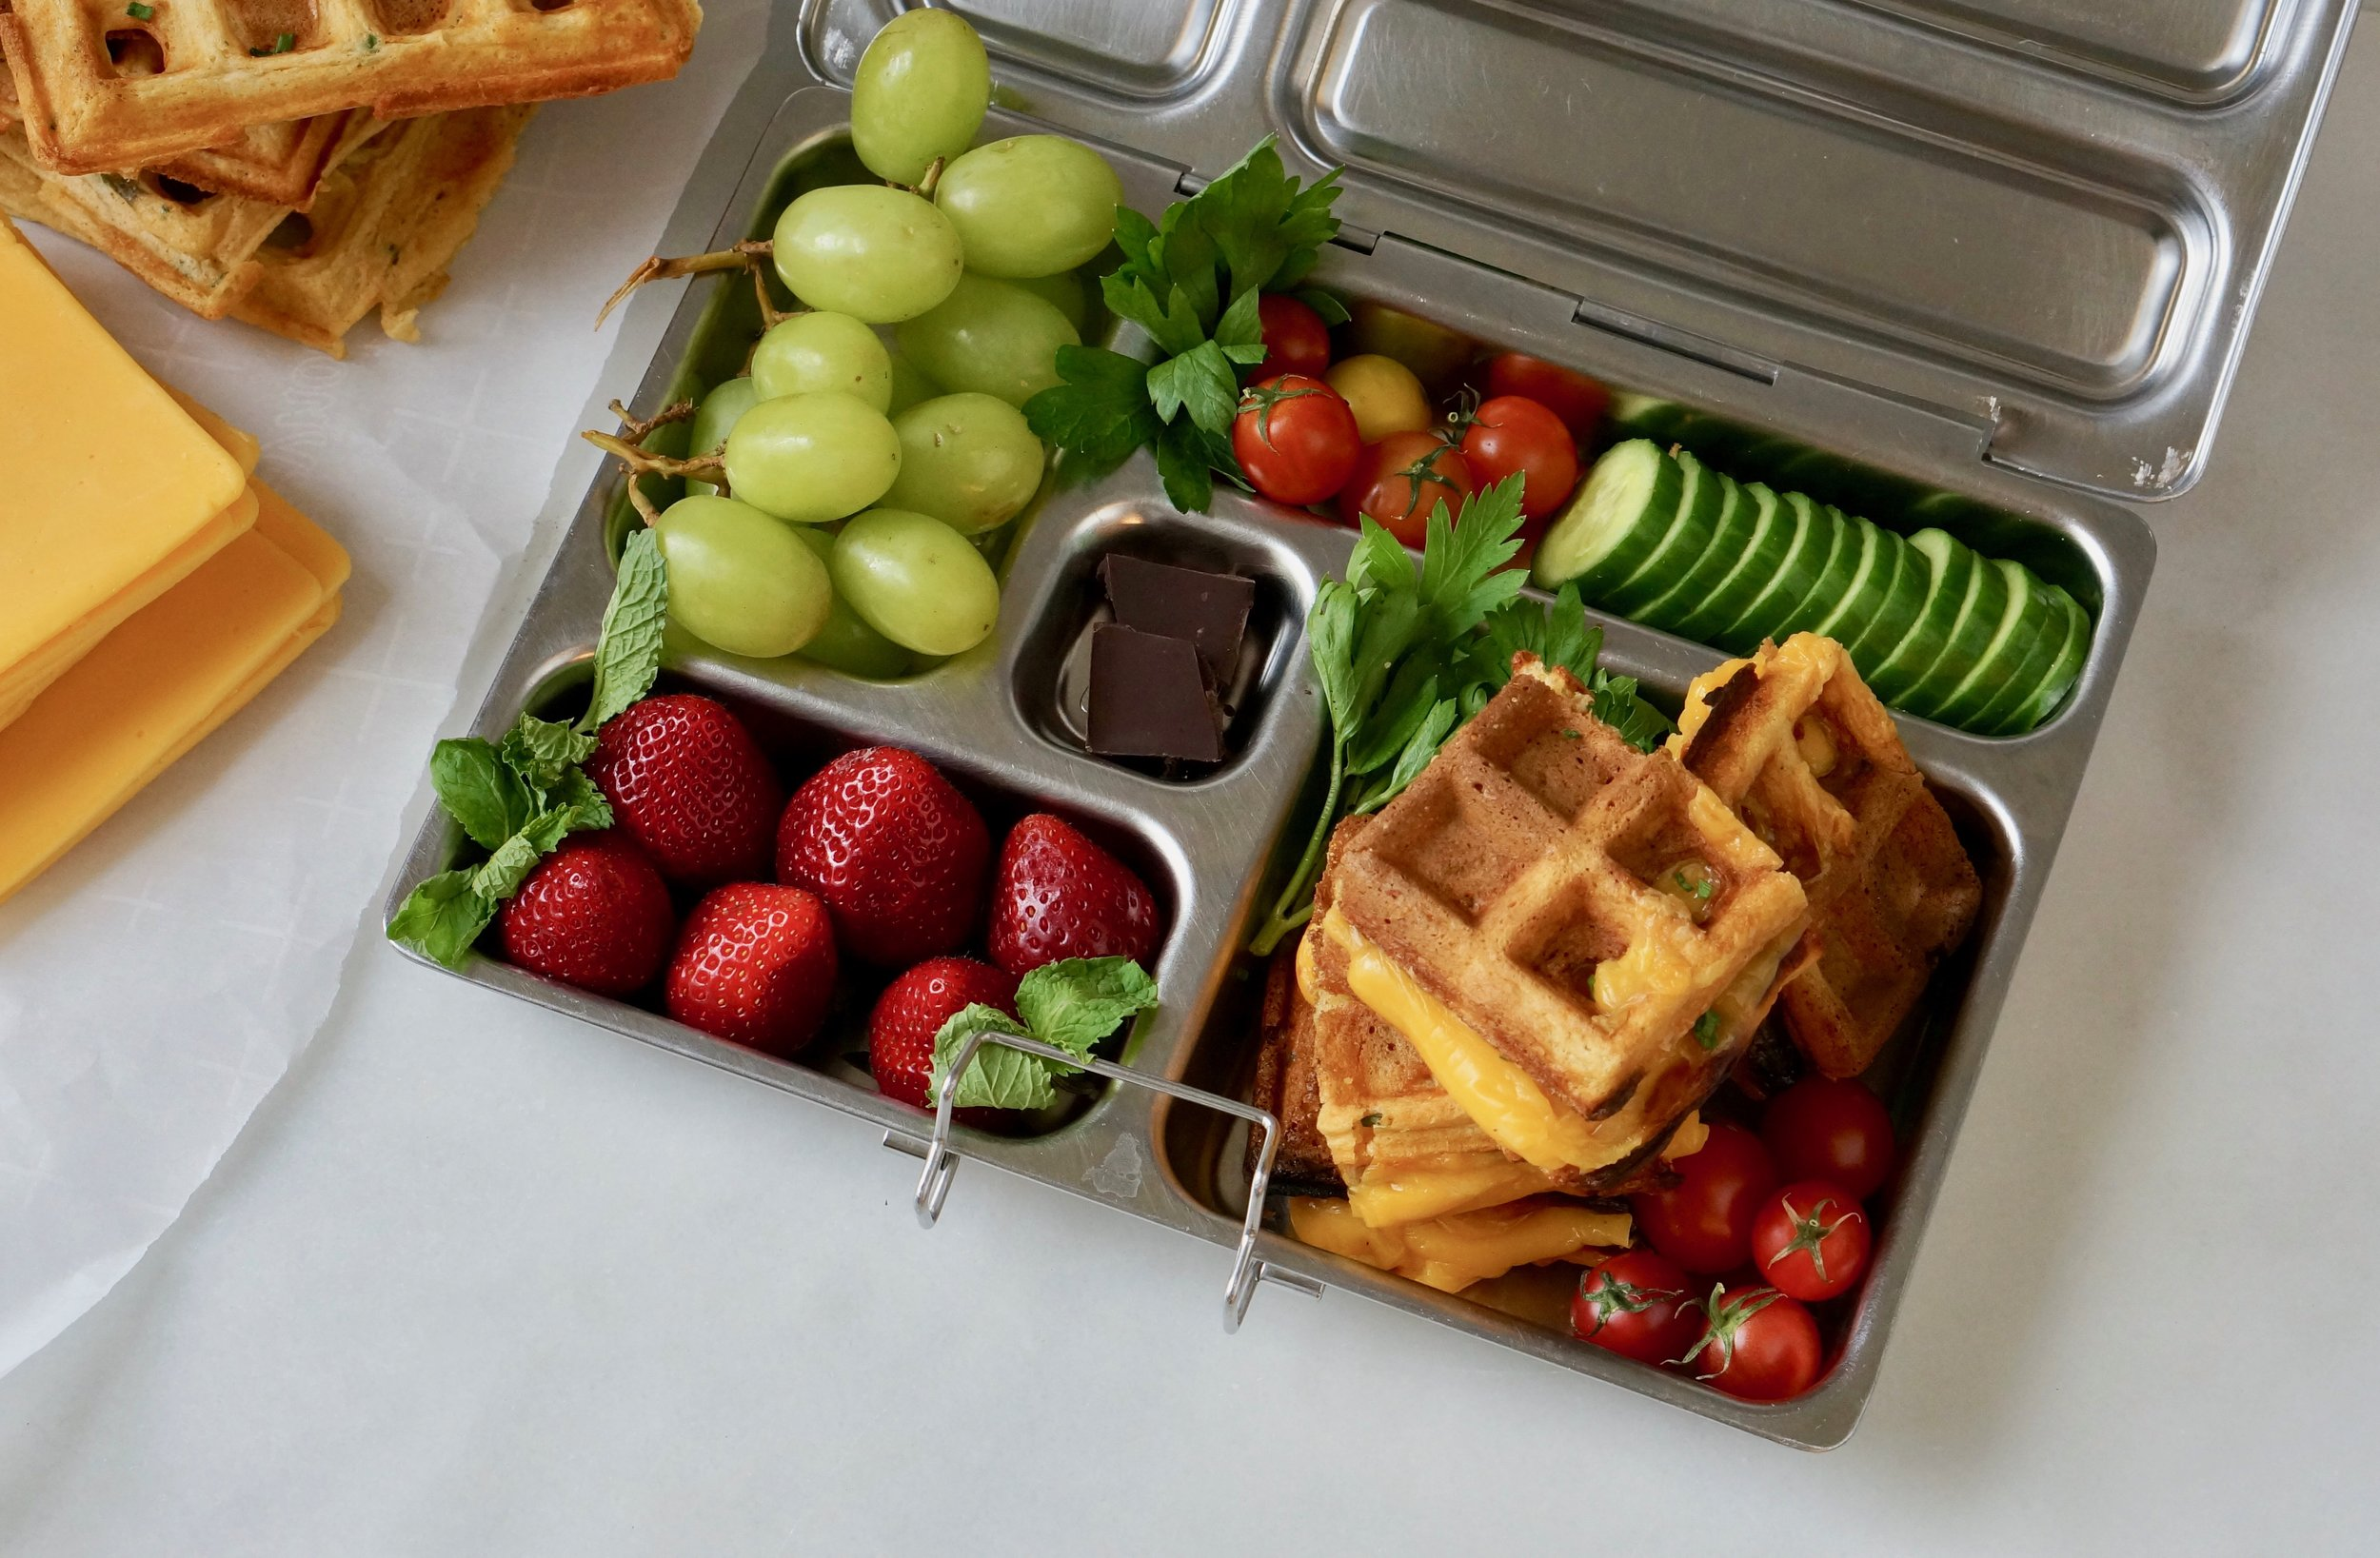 Grilled cheese wafflewich in the lunchbox with strawberries, grapes, tomatoes, cucumber and chocolate.